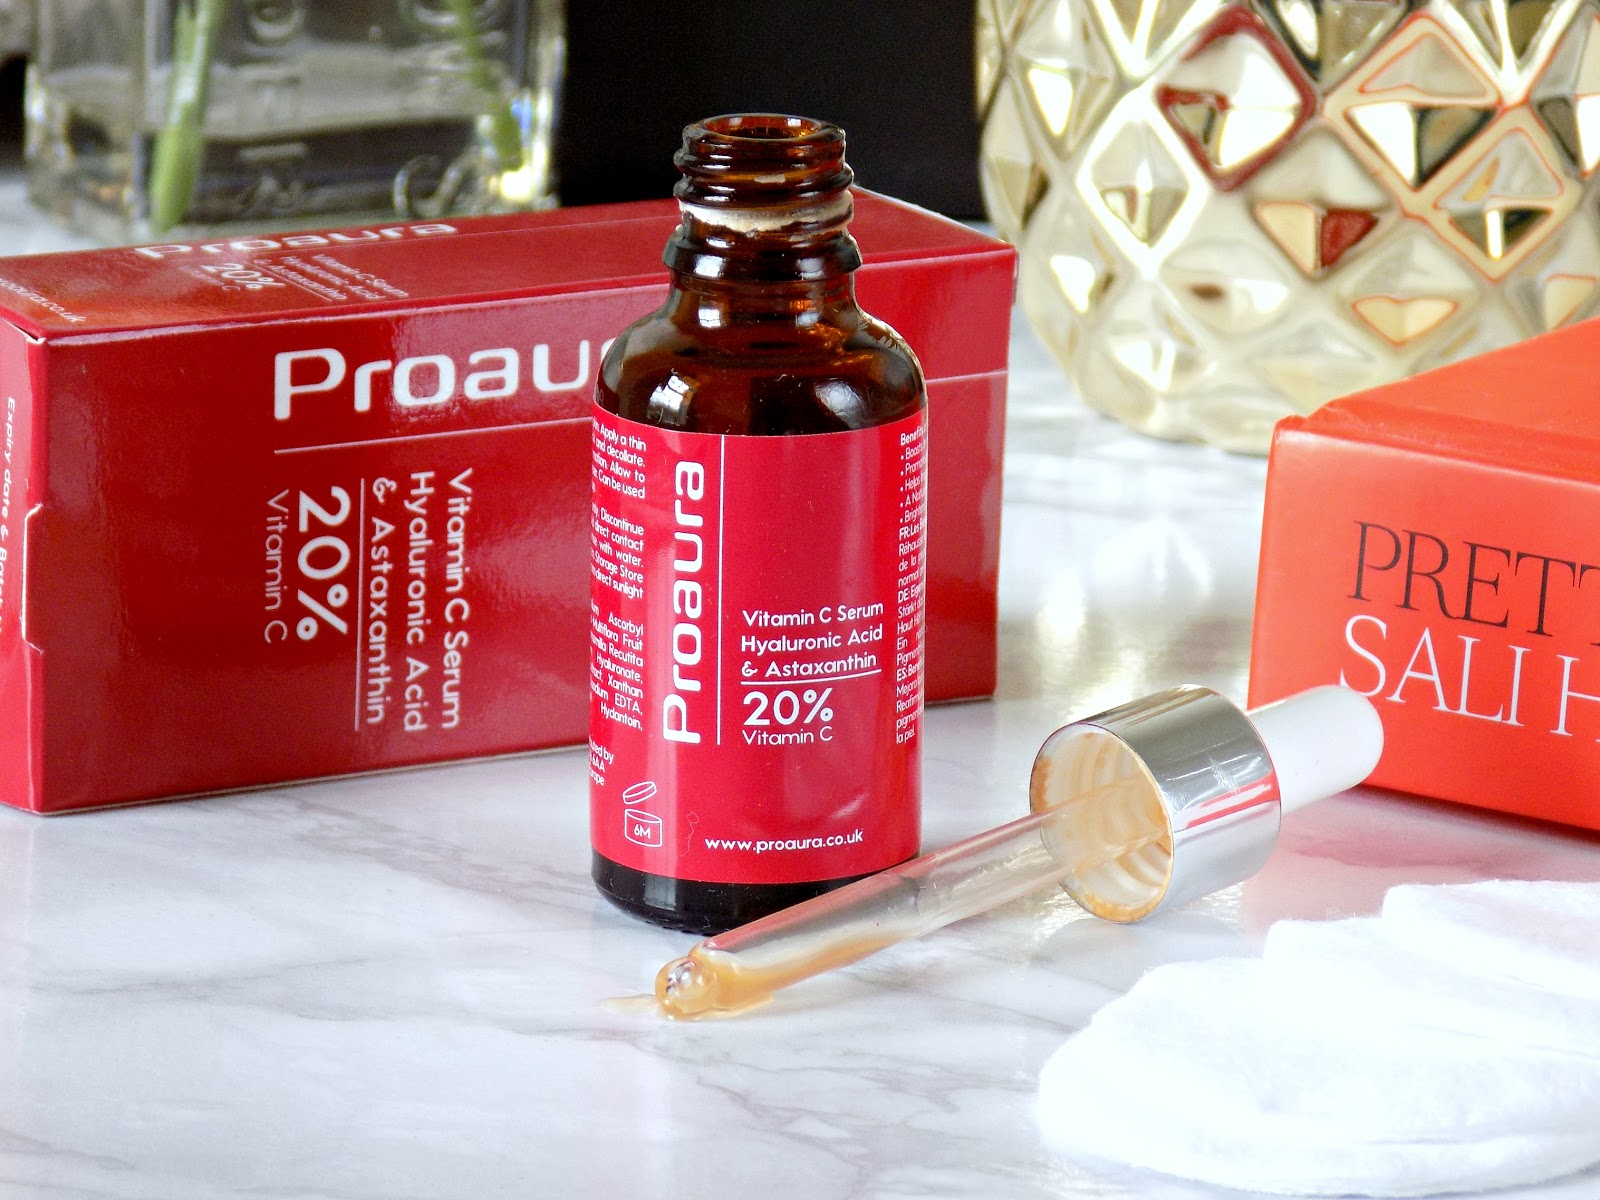 Proaura Vitamin C Serum